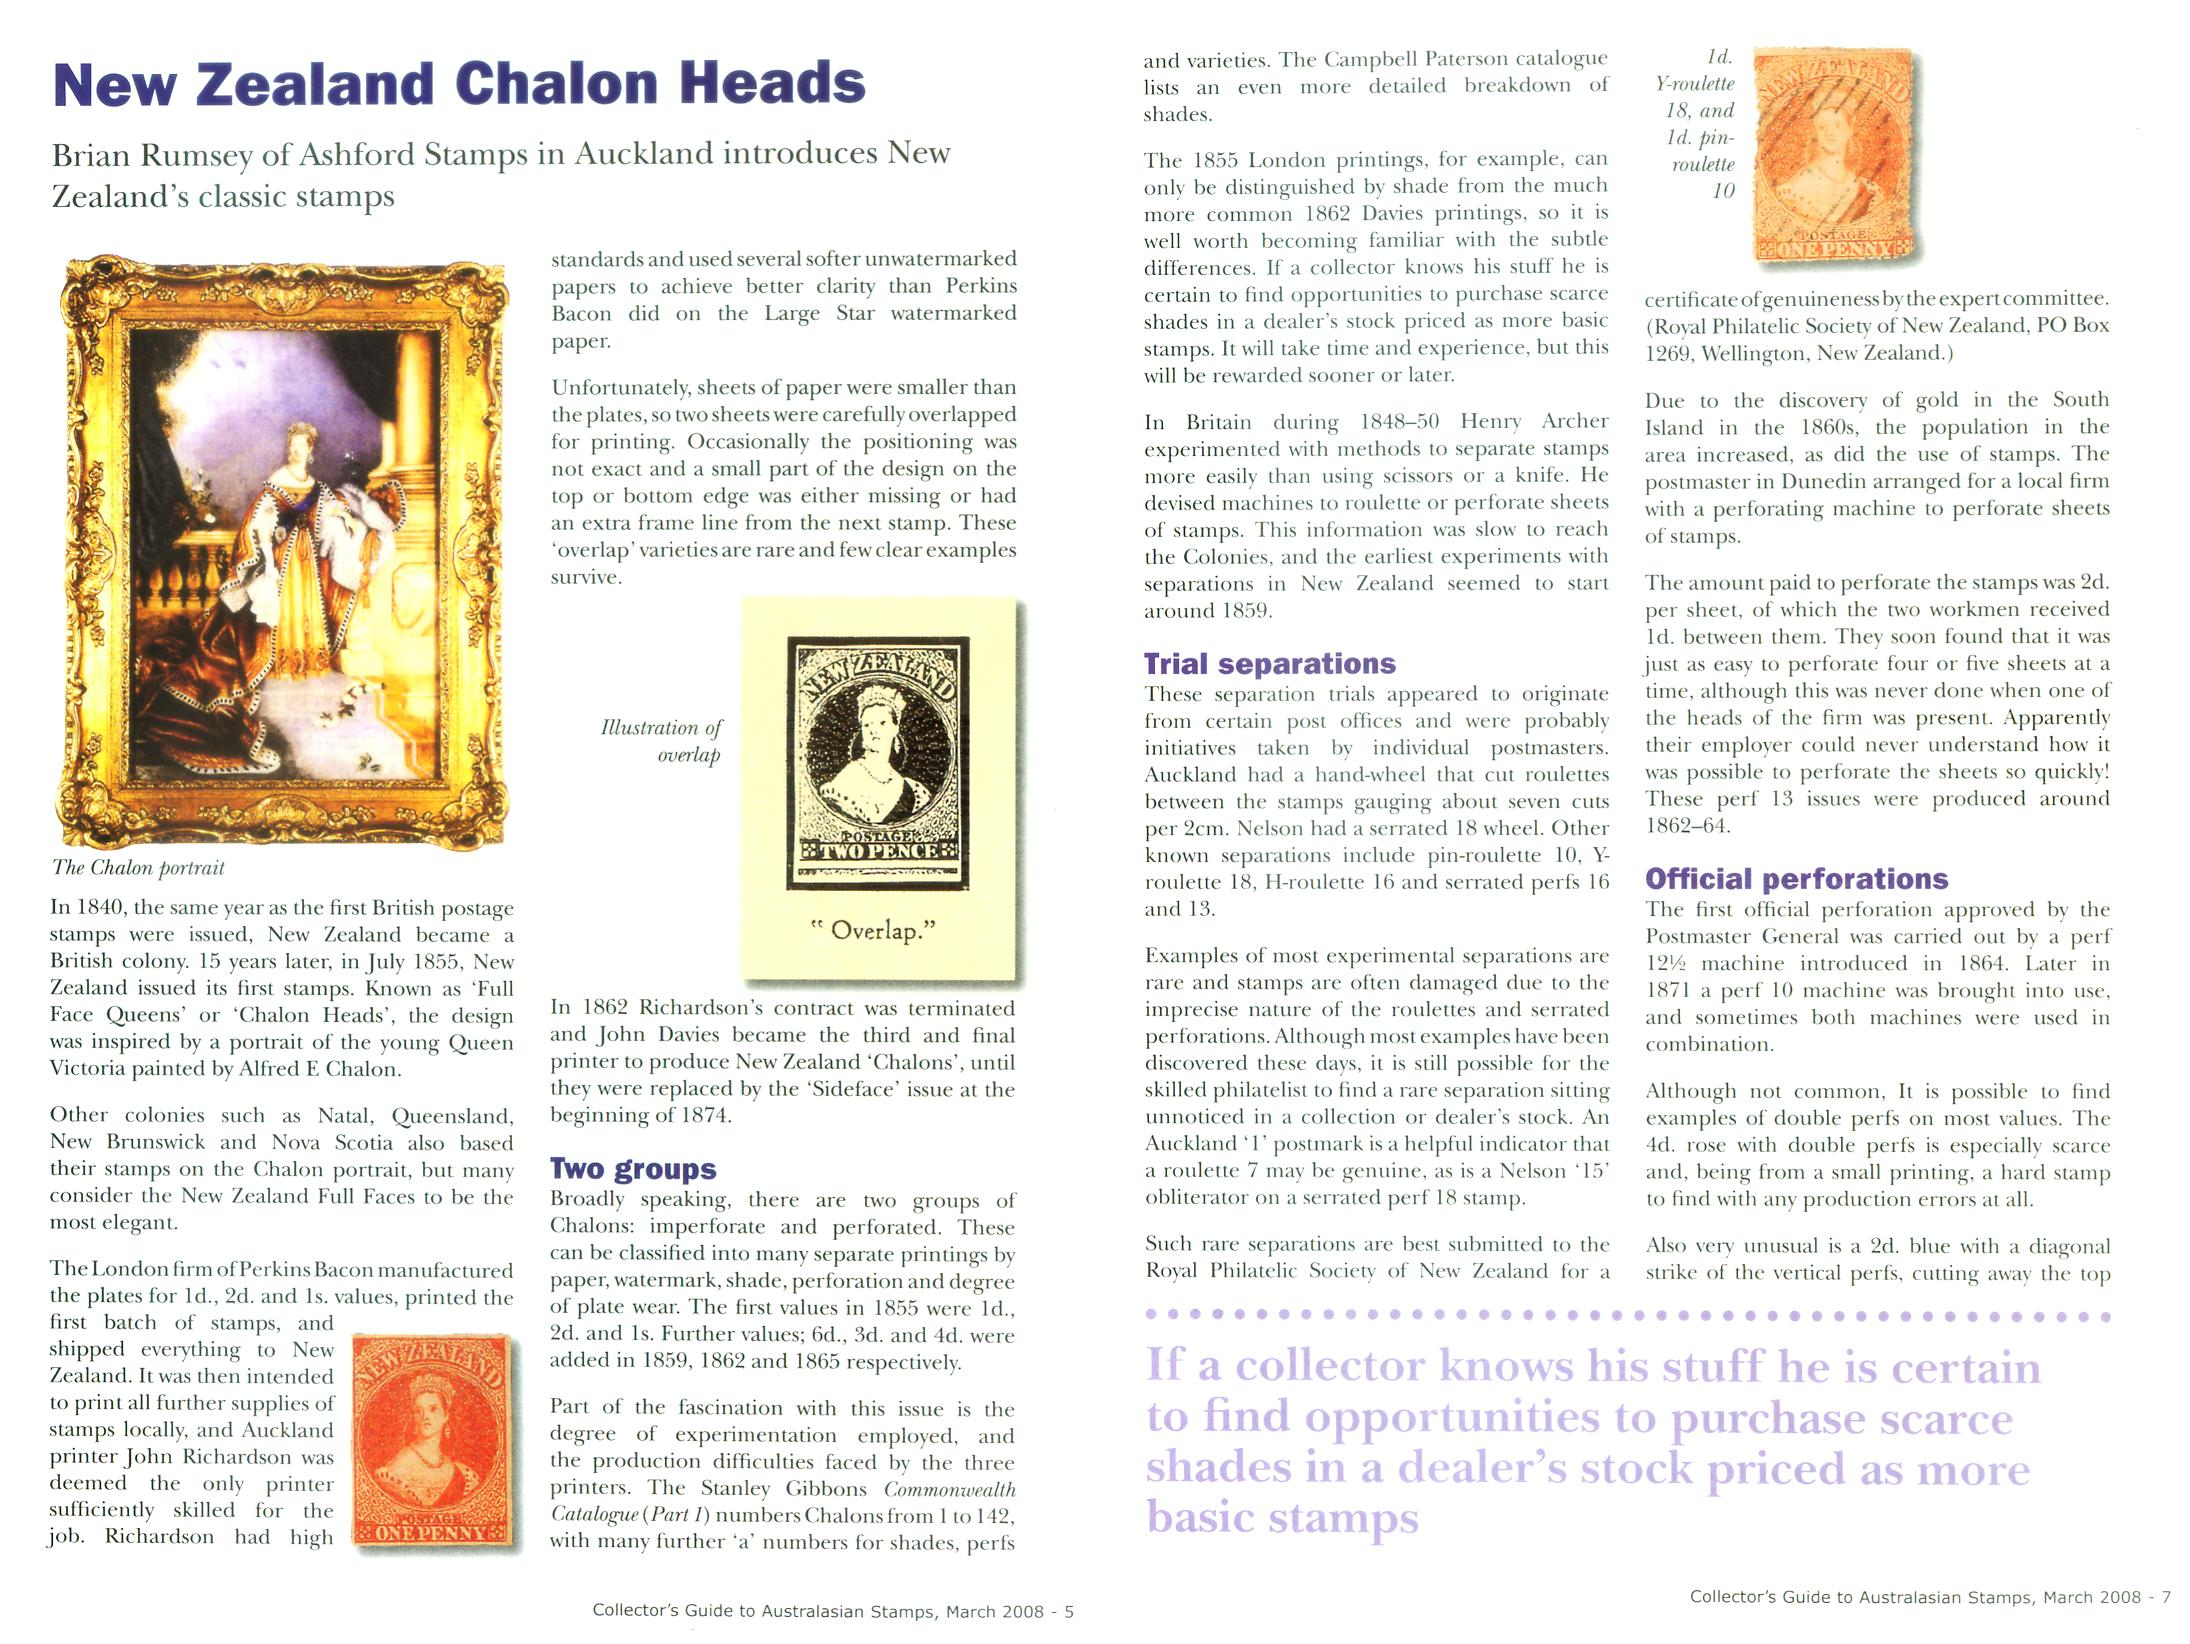 New Zealand Chalons pages 1-2